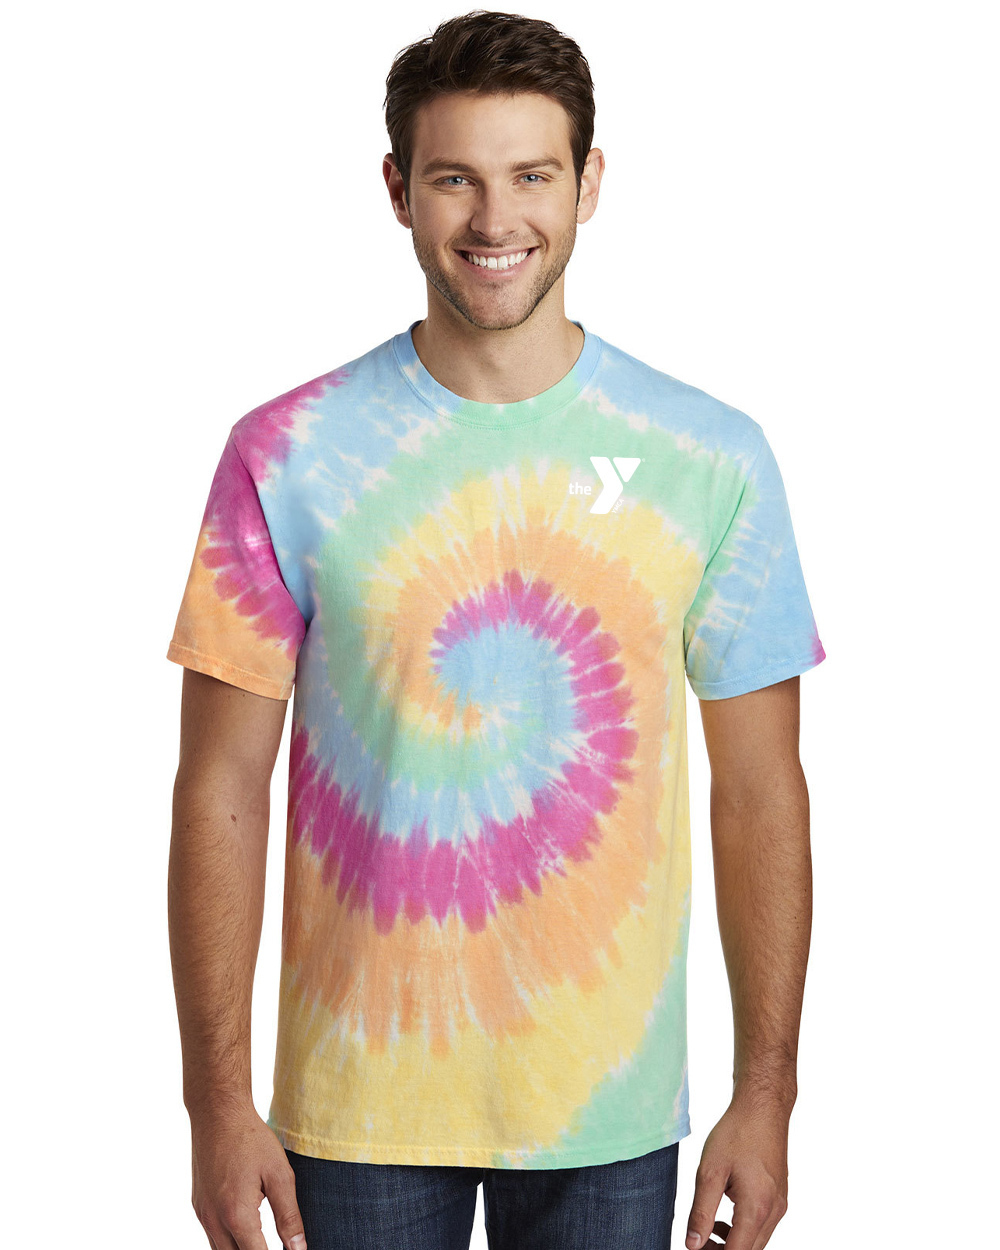 Adult Spirit Wear subcategory image